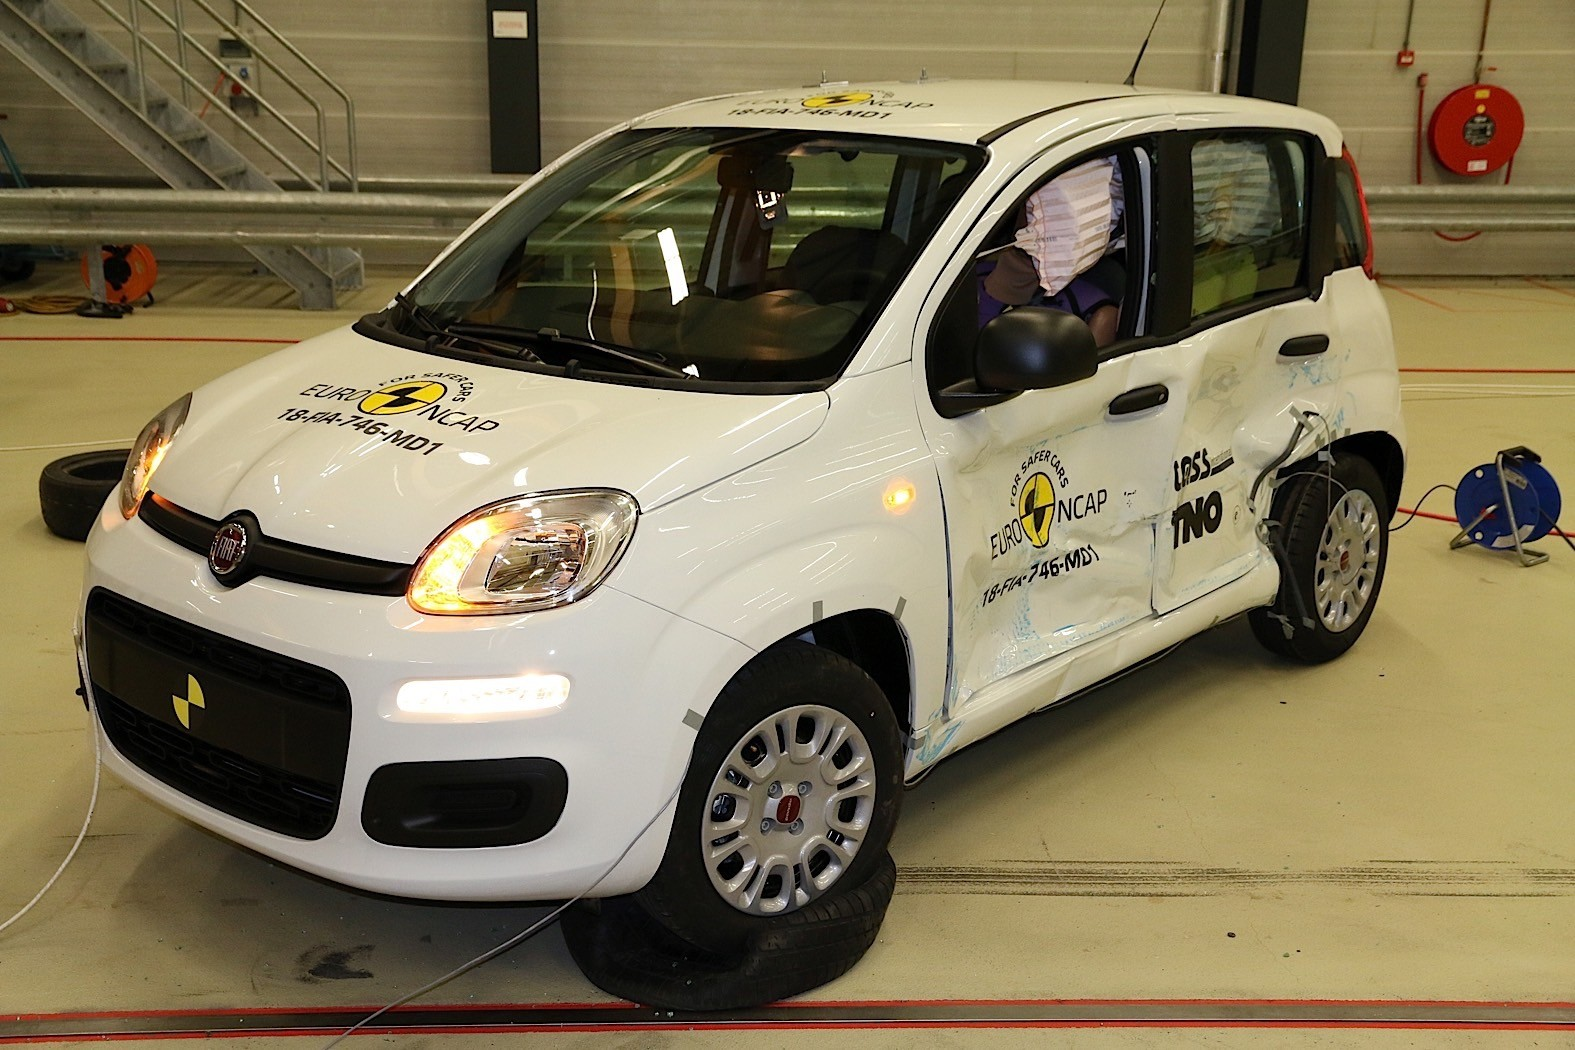 Fiat Panda branded a 'zero-star car' for safety